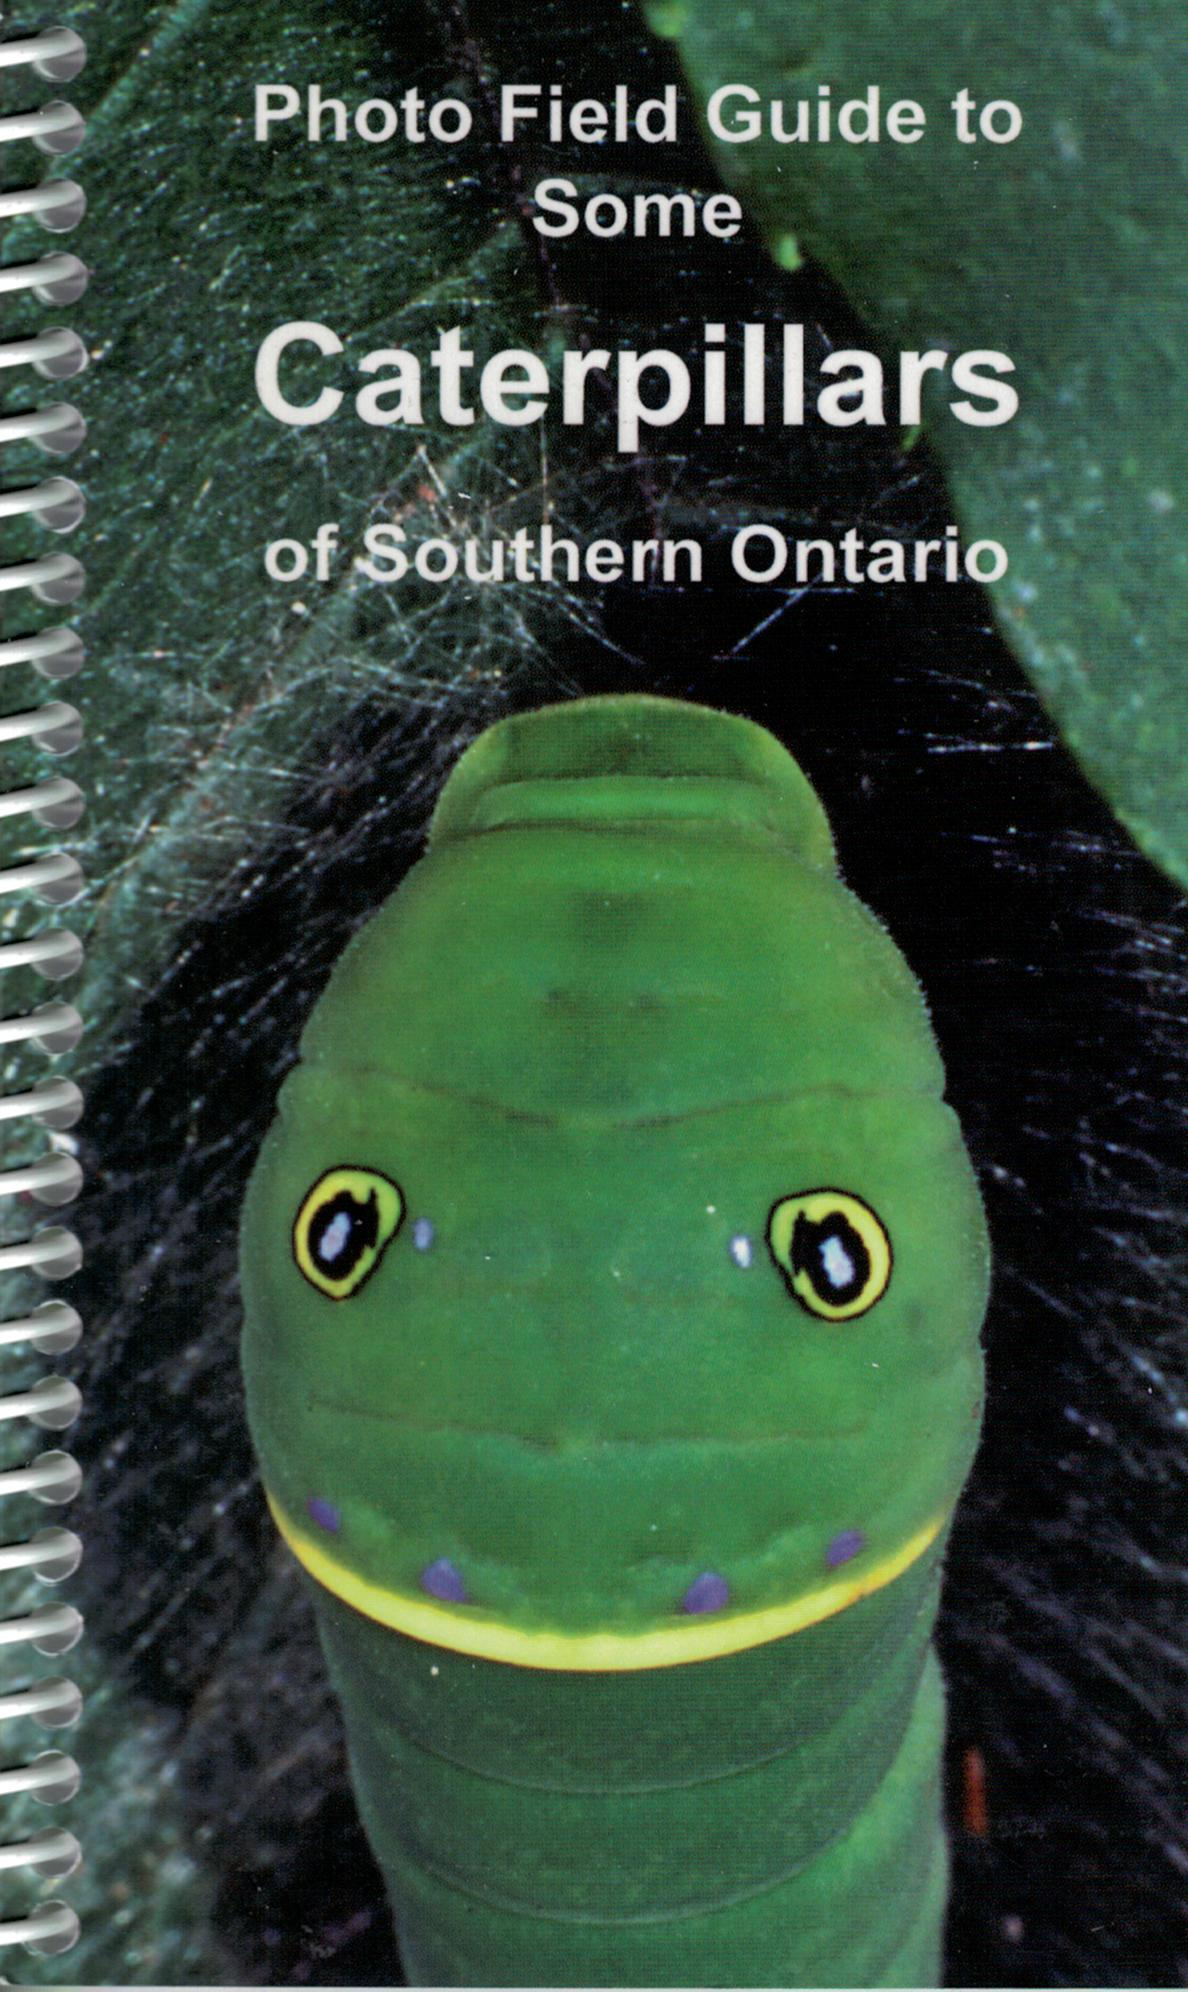 Photo Field Guide to Some Caterpillars of Southern Ontario